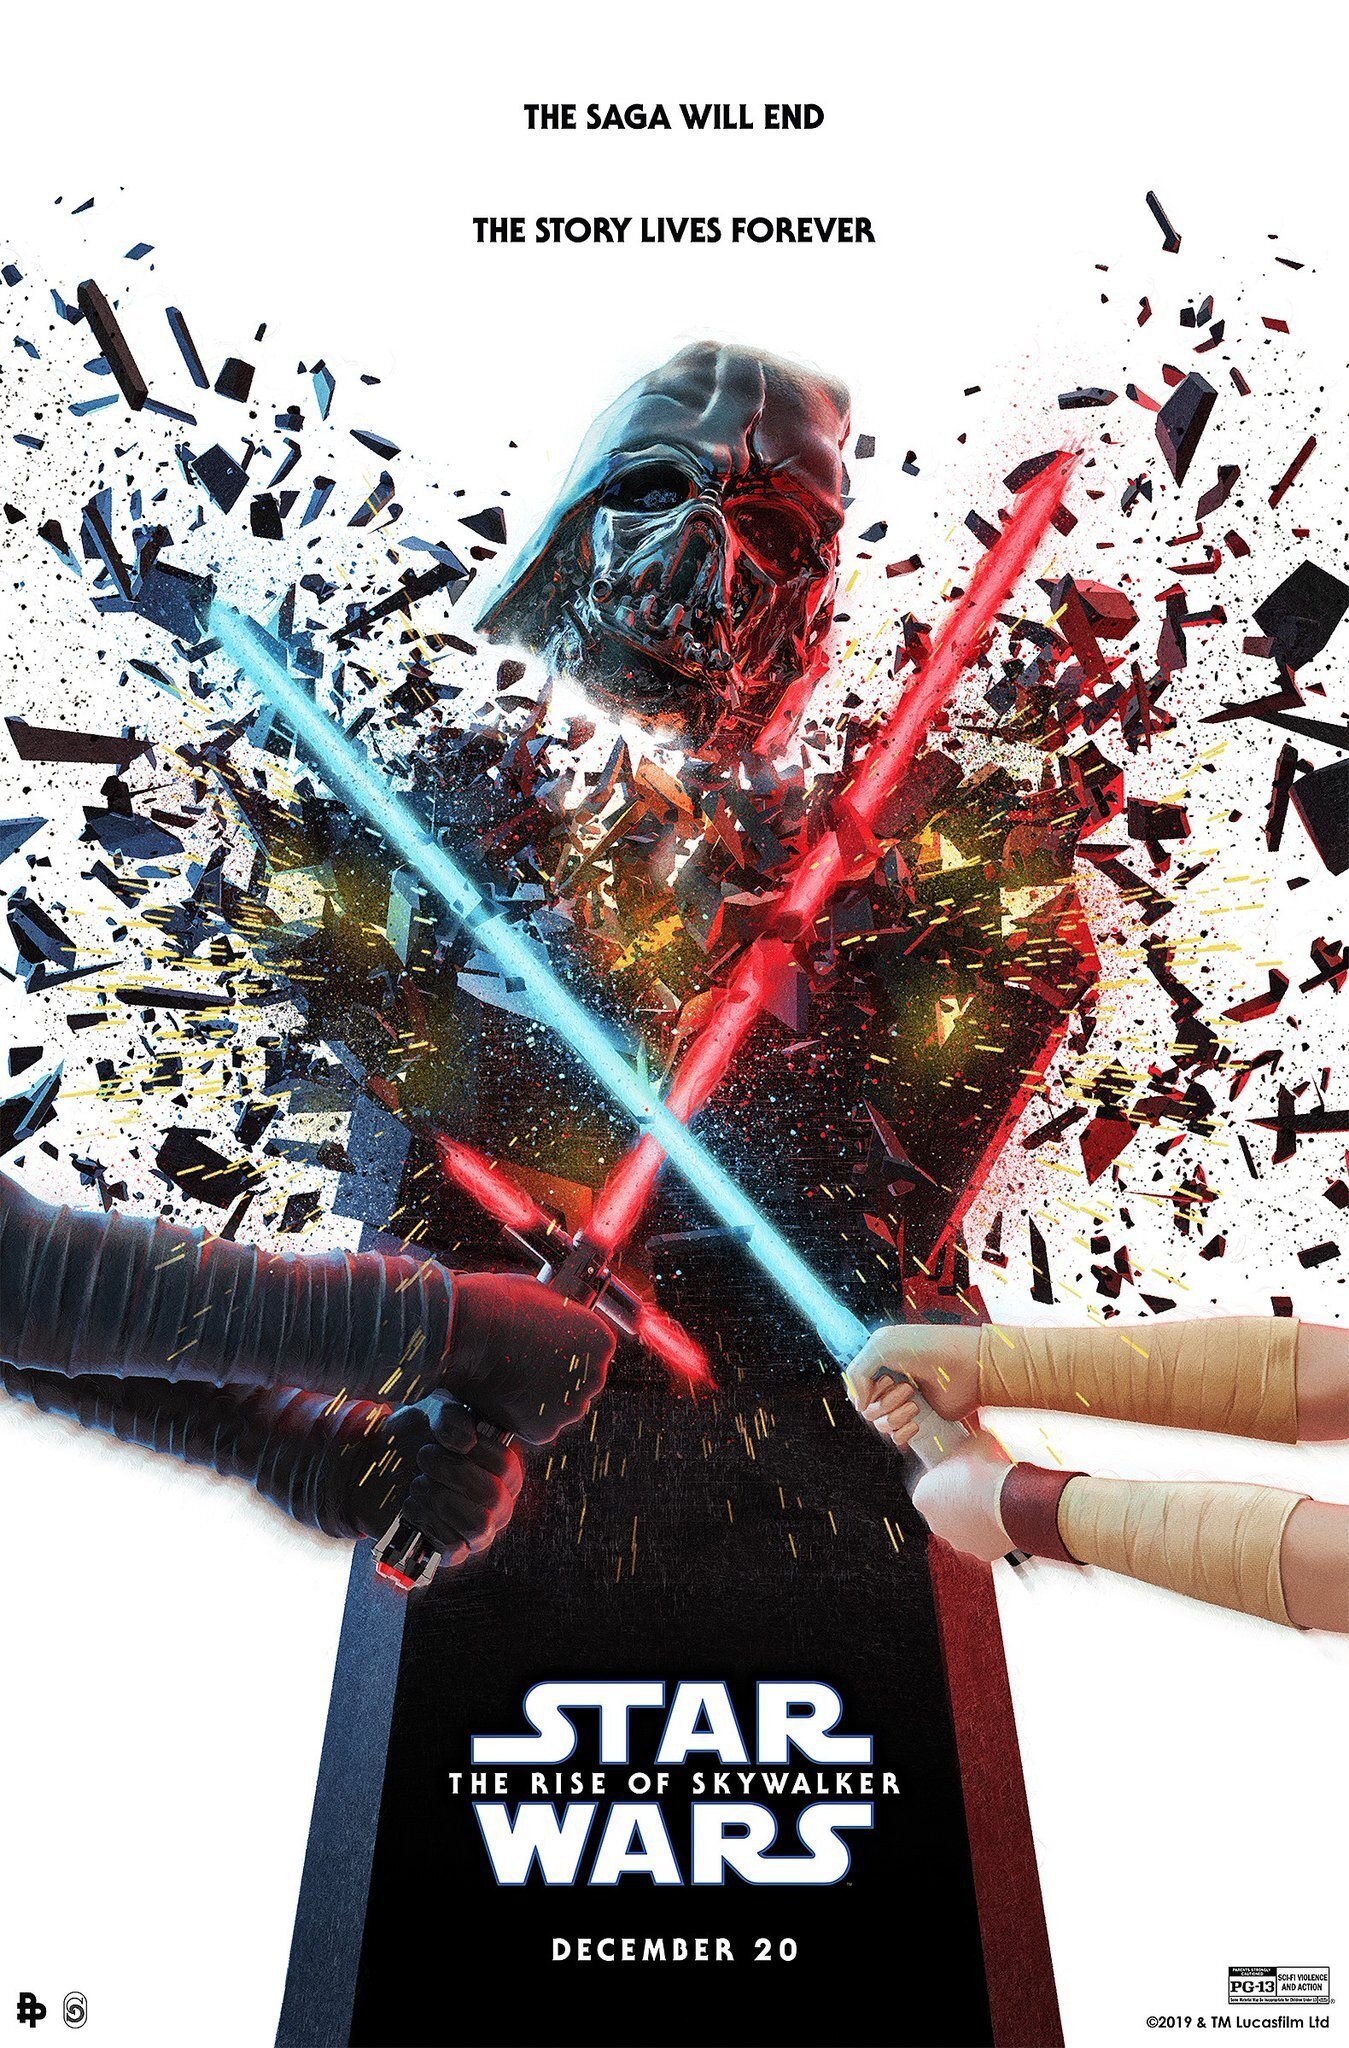 New Poster For Star Wars The Rise Of Skywalker Features Rey And Kylo Destroying The Remains Of Darth Vader Geektyrant